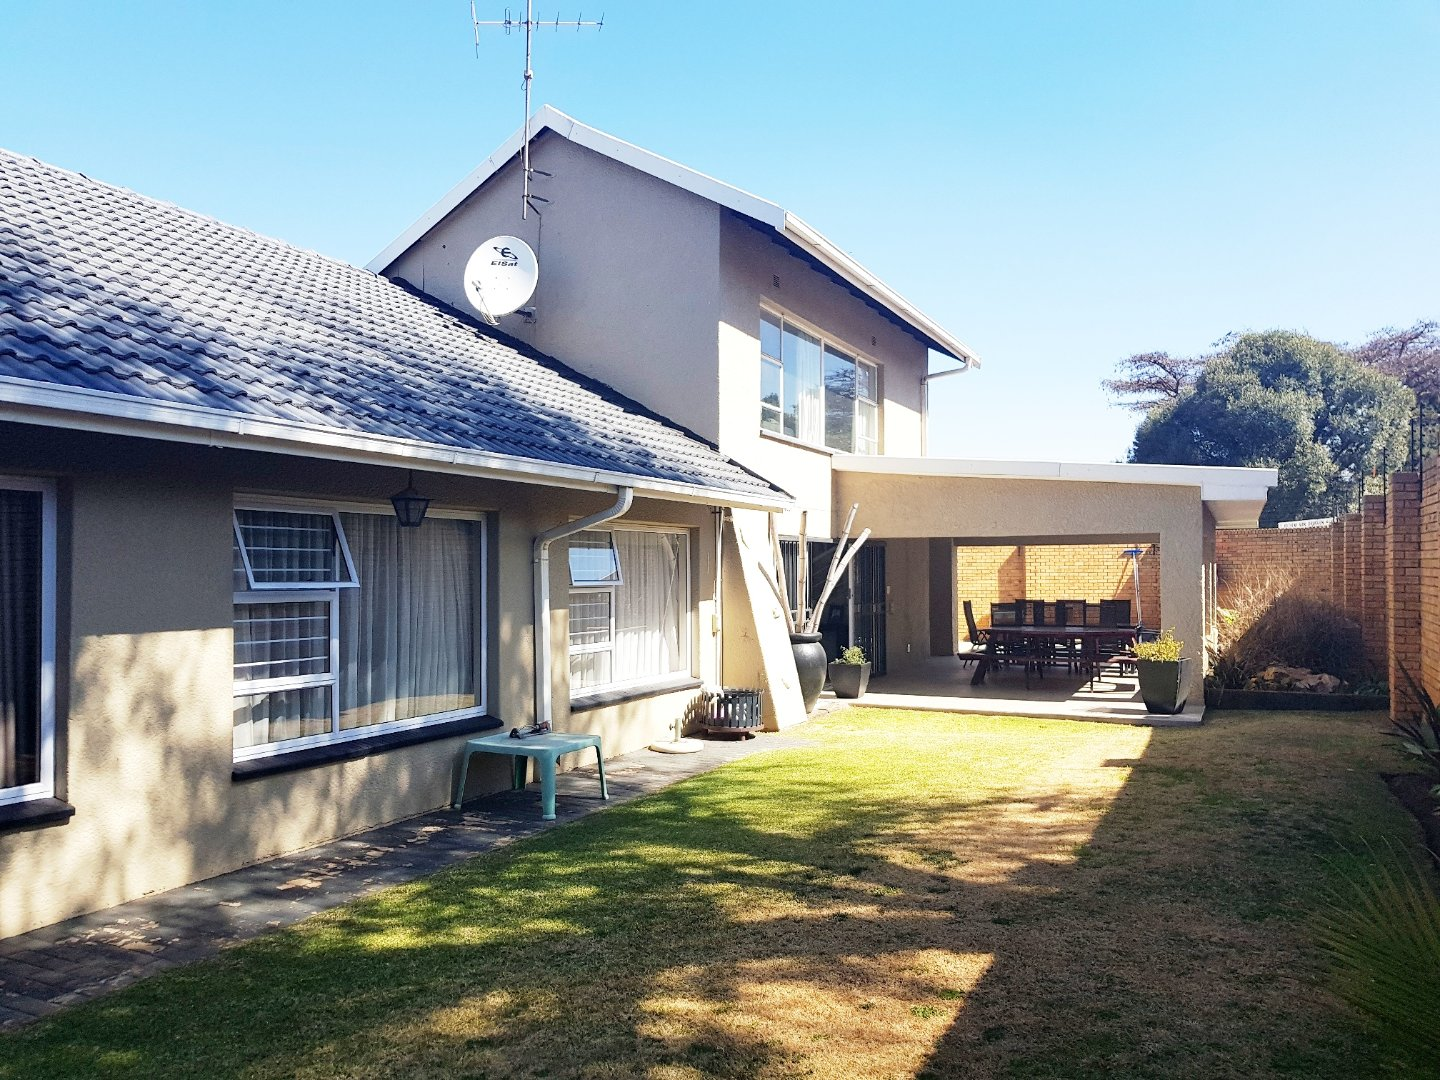 4 bedroom House for sale in Aberdeen